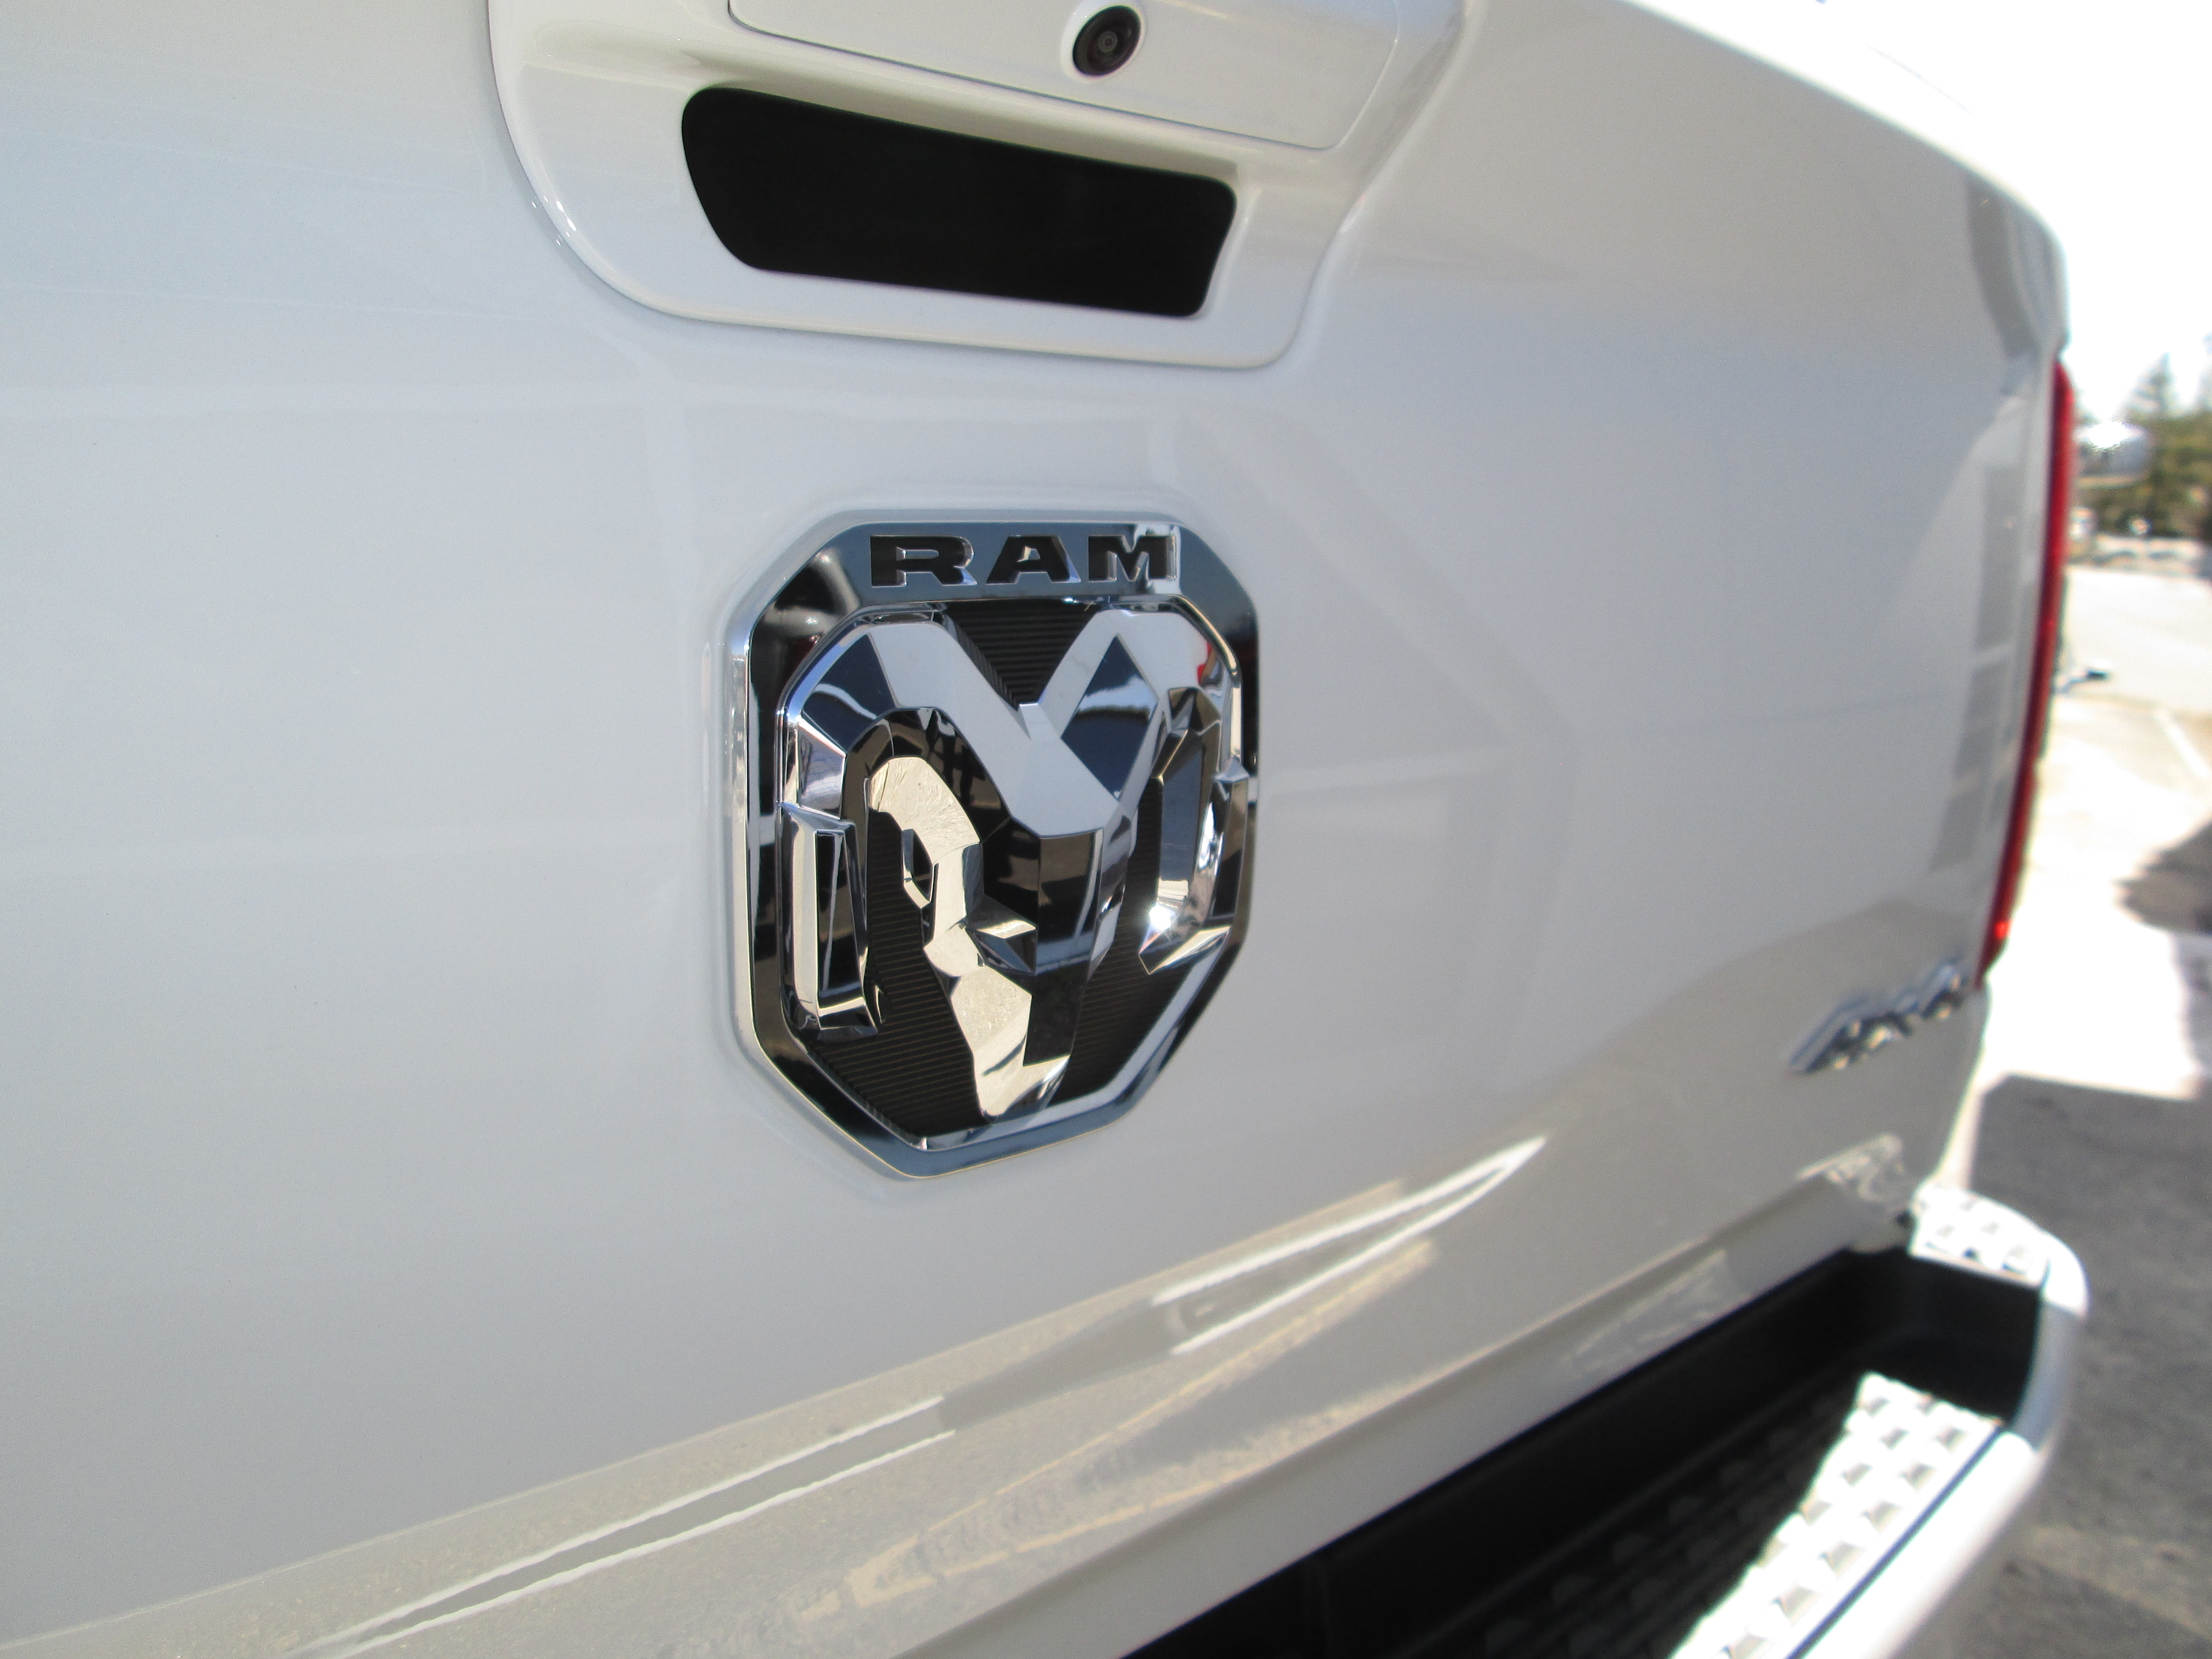 2019 Ram 1500 Crew Cab 4x4, Pickup #9RA23700 - photo 12